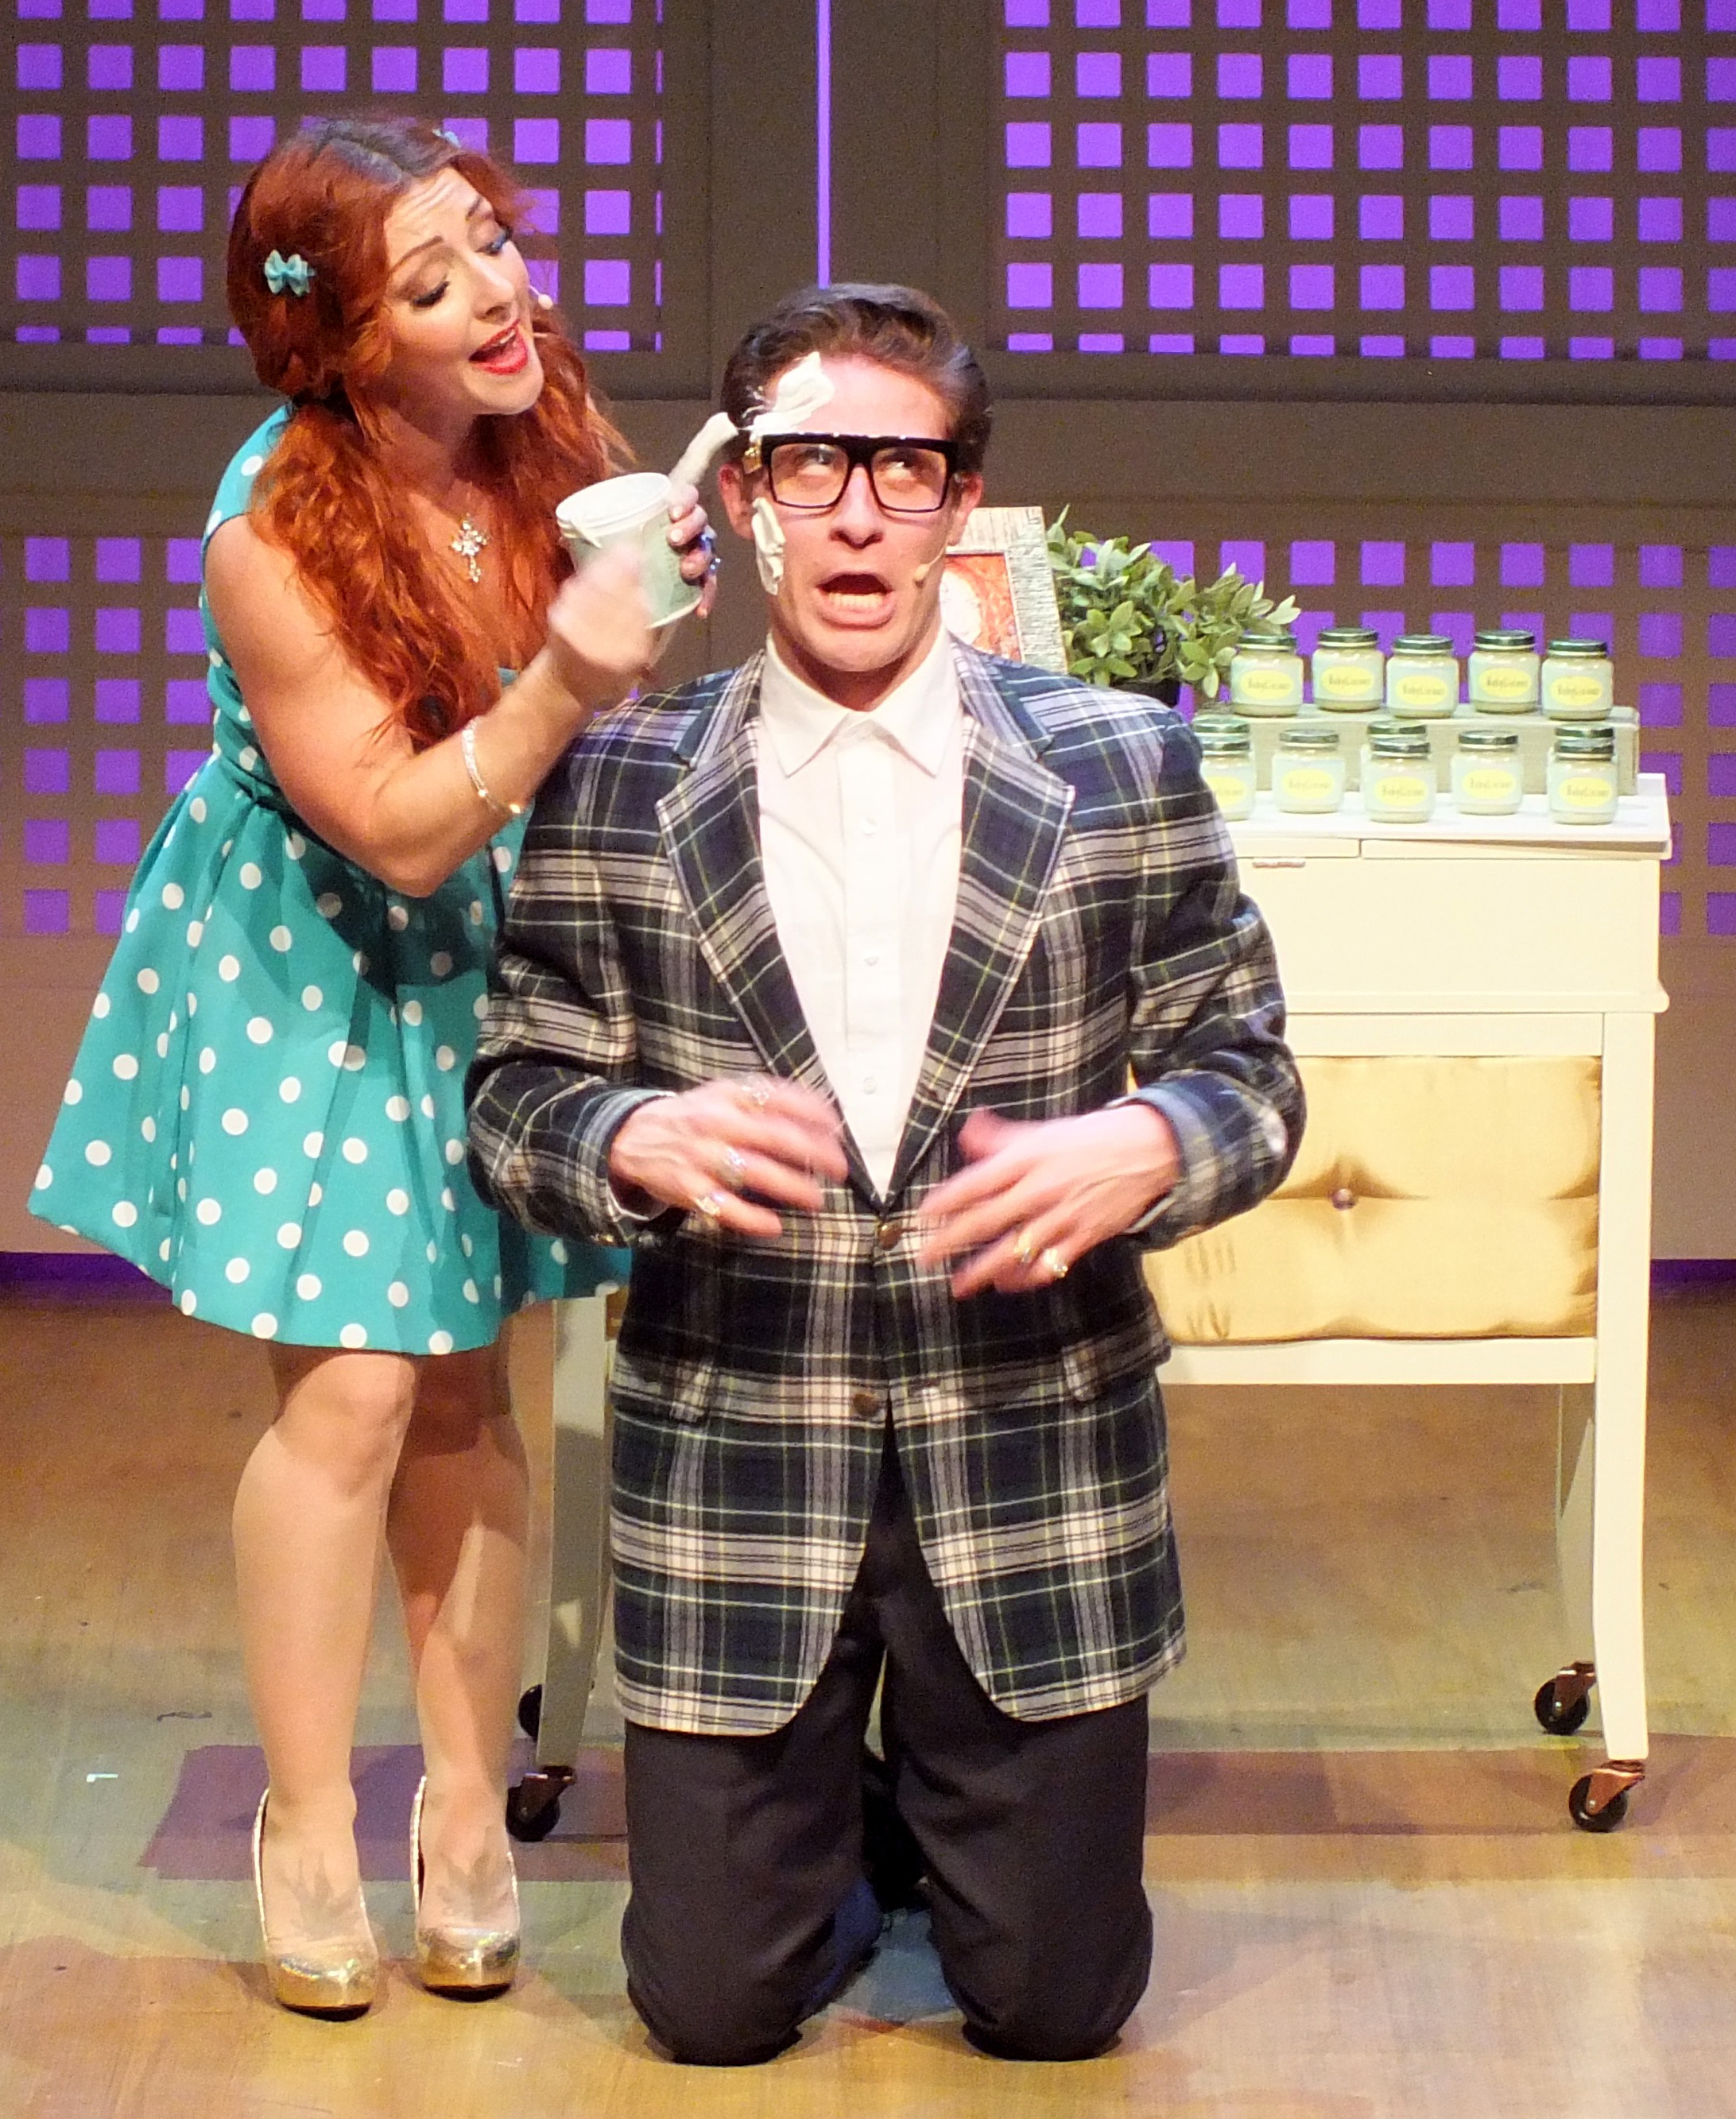 """meet the man - MARC GINSBURG - Marc is thrilled to return to the Housewives after playing all 18 of these crazy roles in the LA premiere of The Real Housewives of Toluca Lake at the Falcon/Garry Marshall Theatre in 2016! Southern California theater: Che (Evita; Ovation Nomination), Aaron (First Date; Ovation Nomination), Lord Farquaad (Shrek; San Diego Critics Nomination), Lumiere (Beauty and the Beast), Quixote/Cervantes (Man of La Mancha), Leo Bloom (The Producers), Chauvelin (The Scarlet Pimpernel), Sir Lancelot, et. al. (Spamalot), and many others. Film: """"Racing Colt"""" (check it out on Amazon Prime!)."""